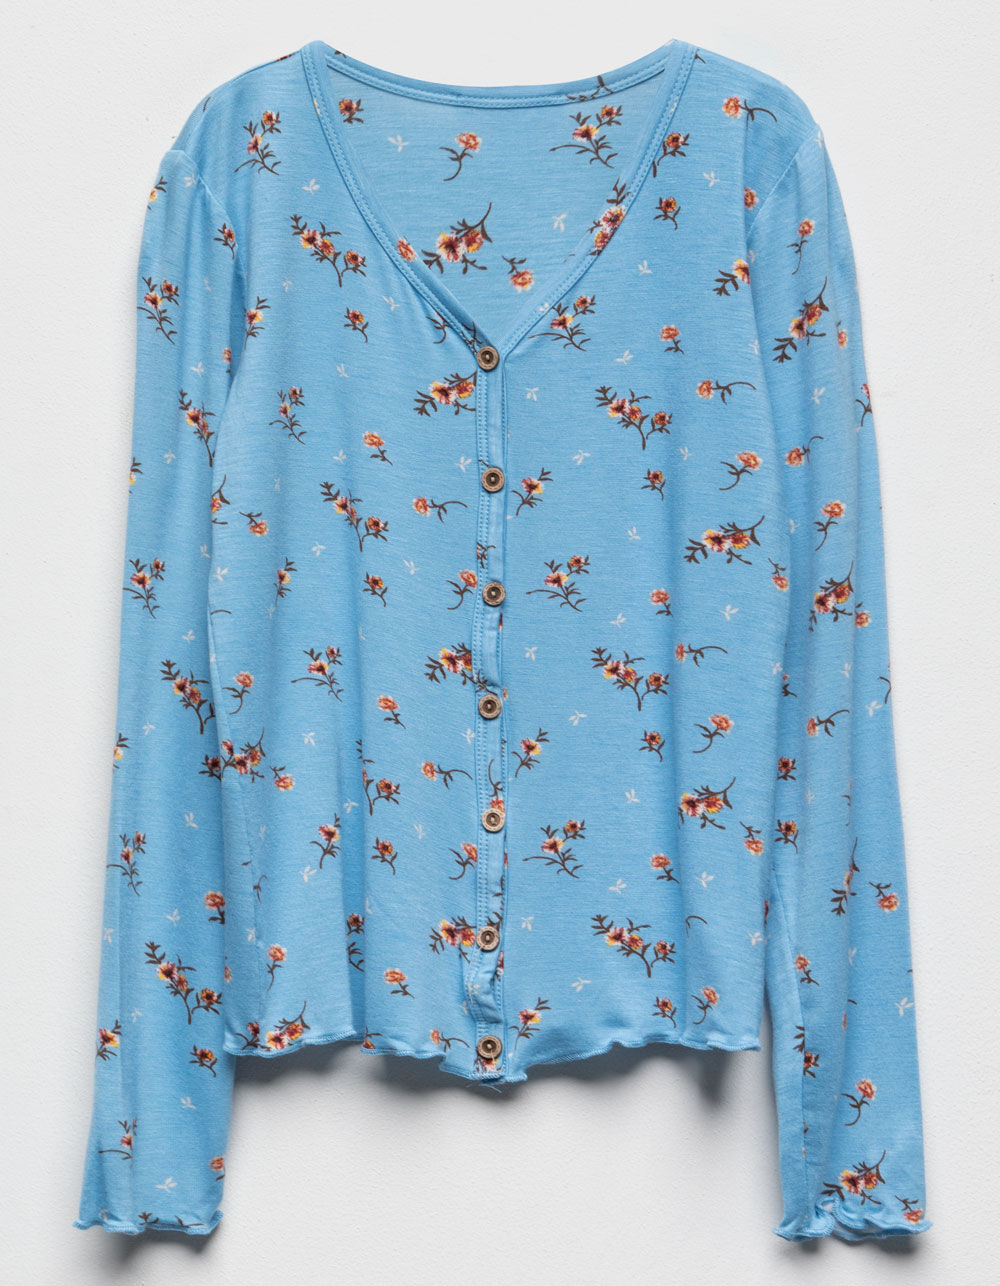 WHITE FAWN Floral Button Front Blue Girls Top